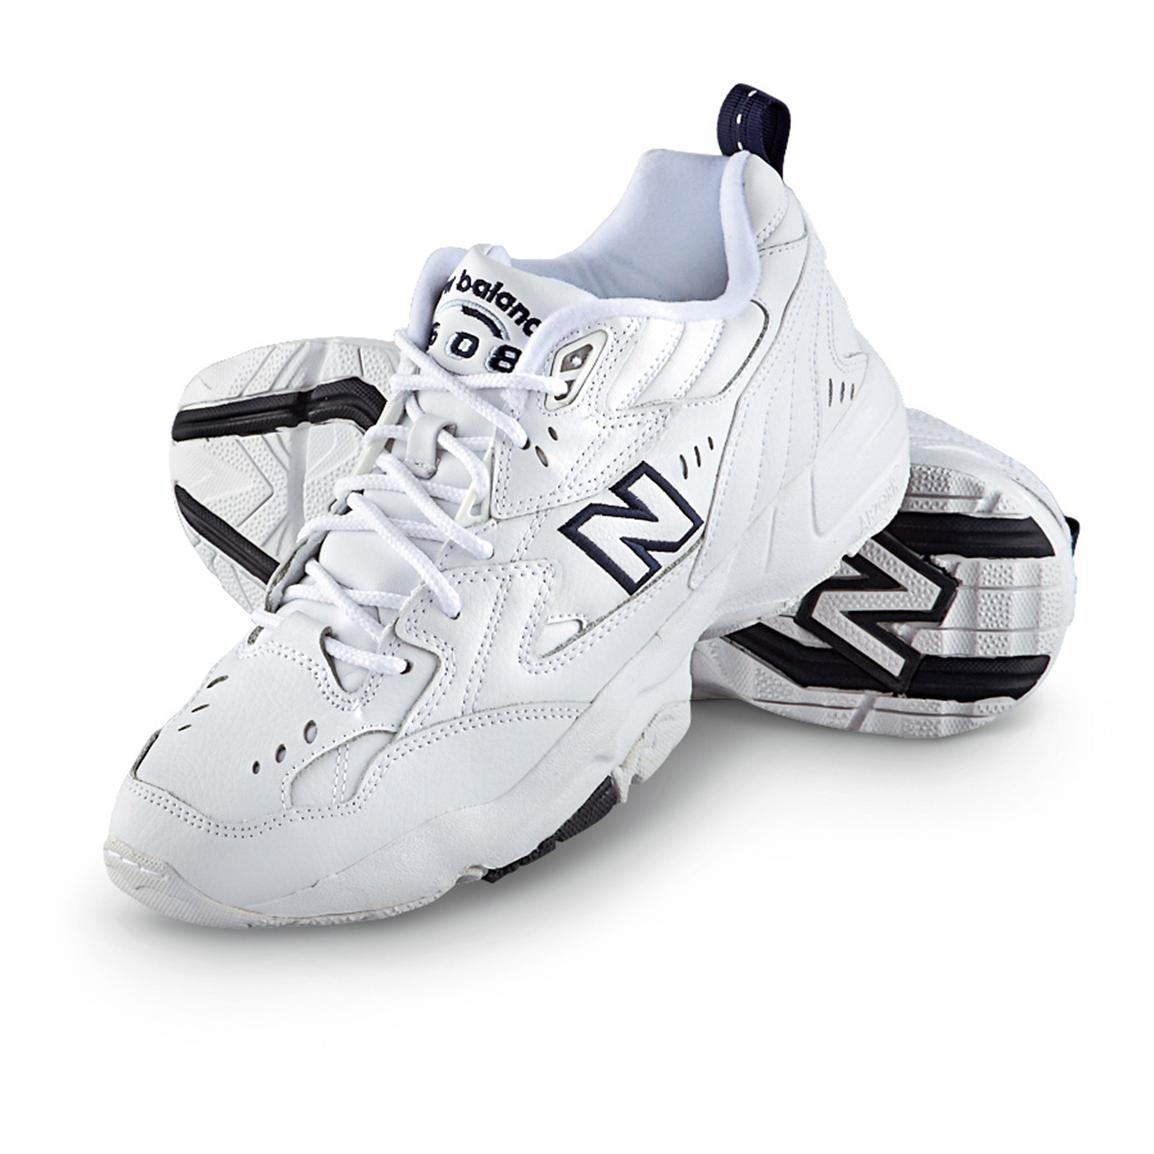 Men's New Balance 608 Athletic Shoes, White